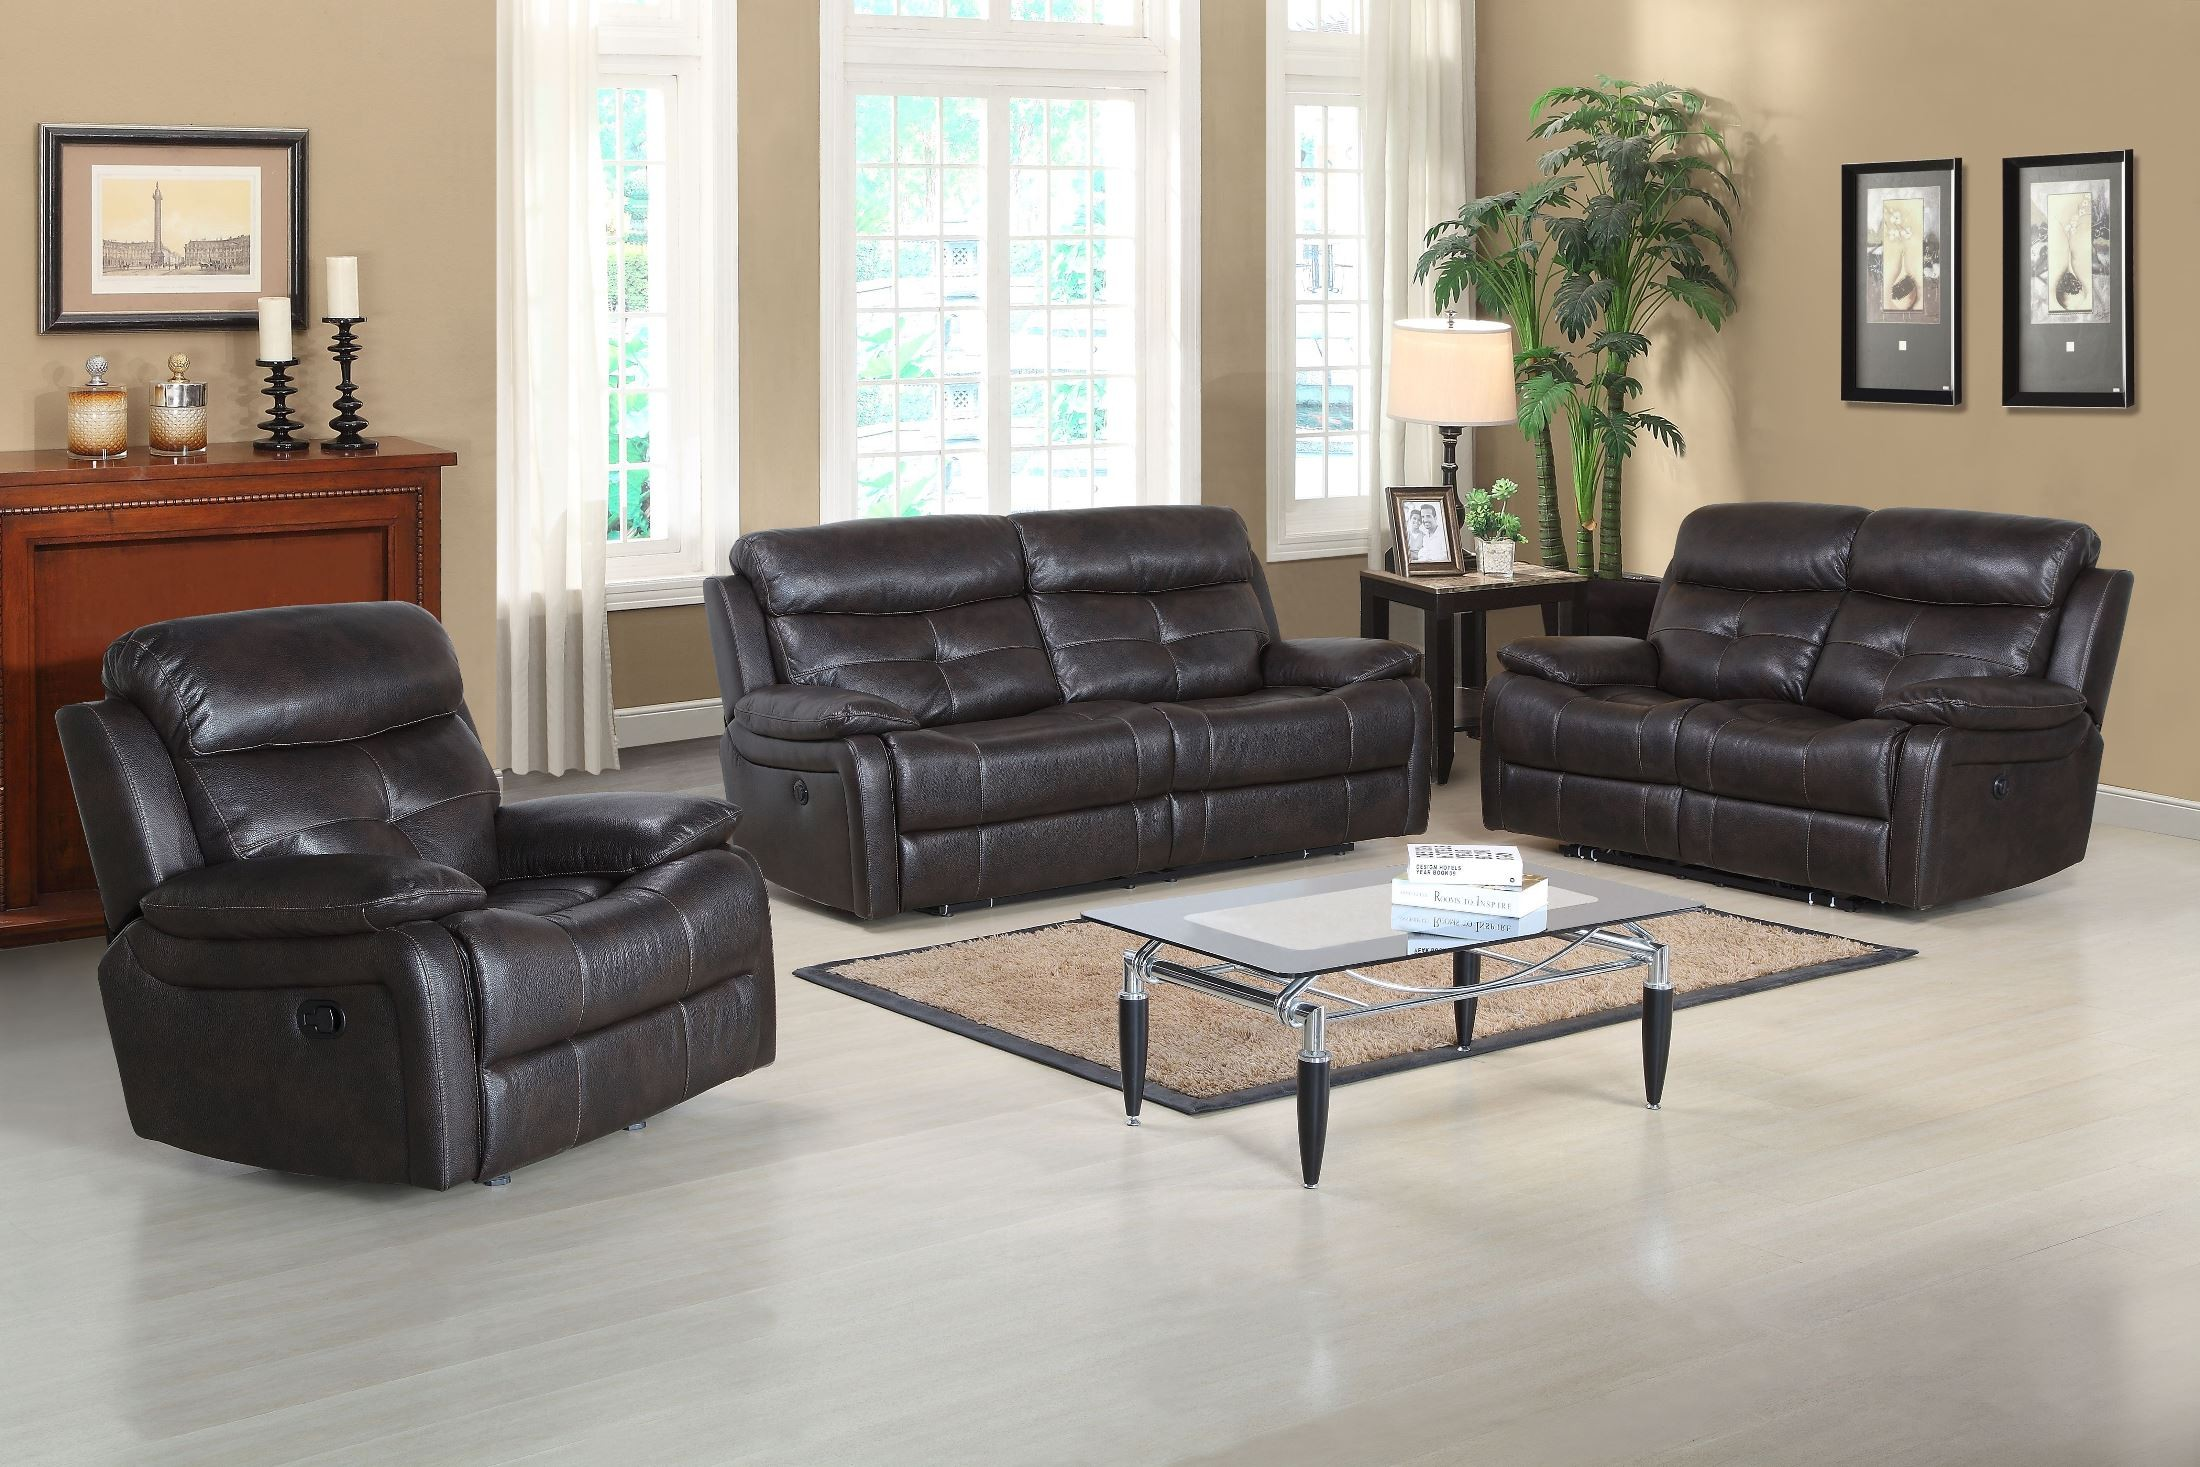 Metro jordan java power reclining living room set from for Living room june jordan